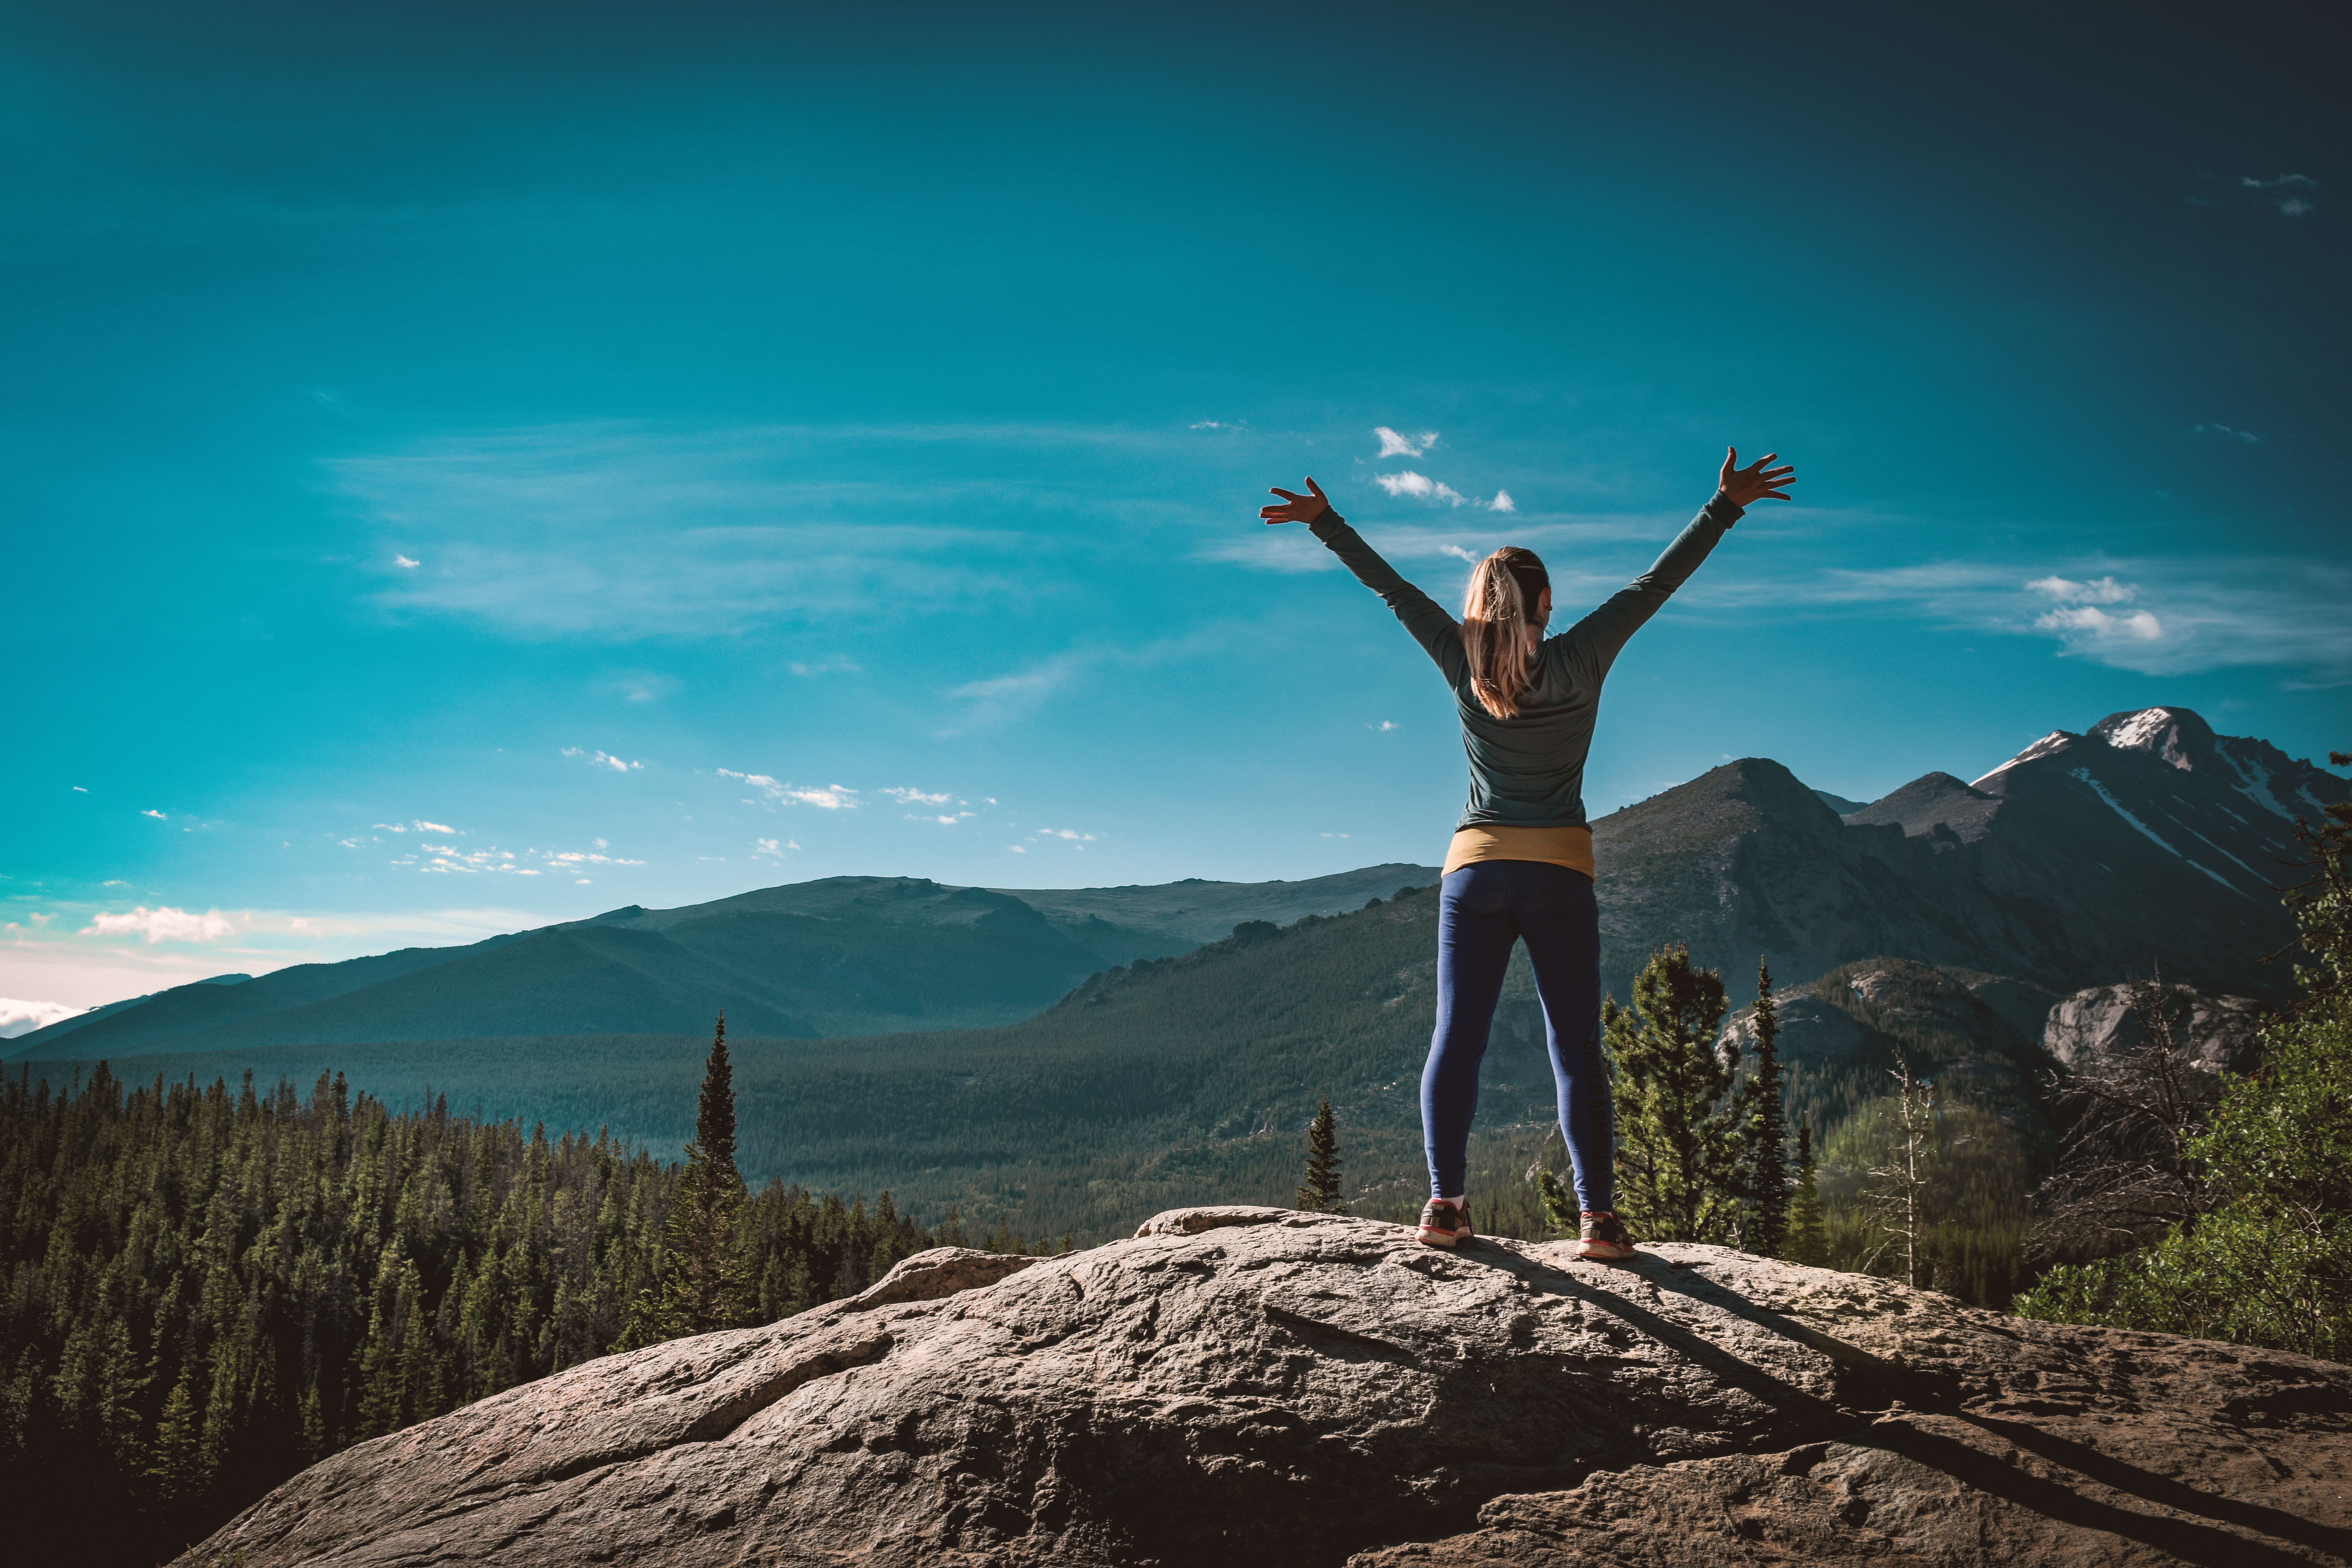 Kat stands atop a rocky bluff overlooking mountains